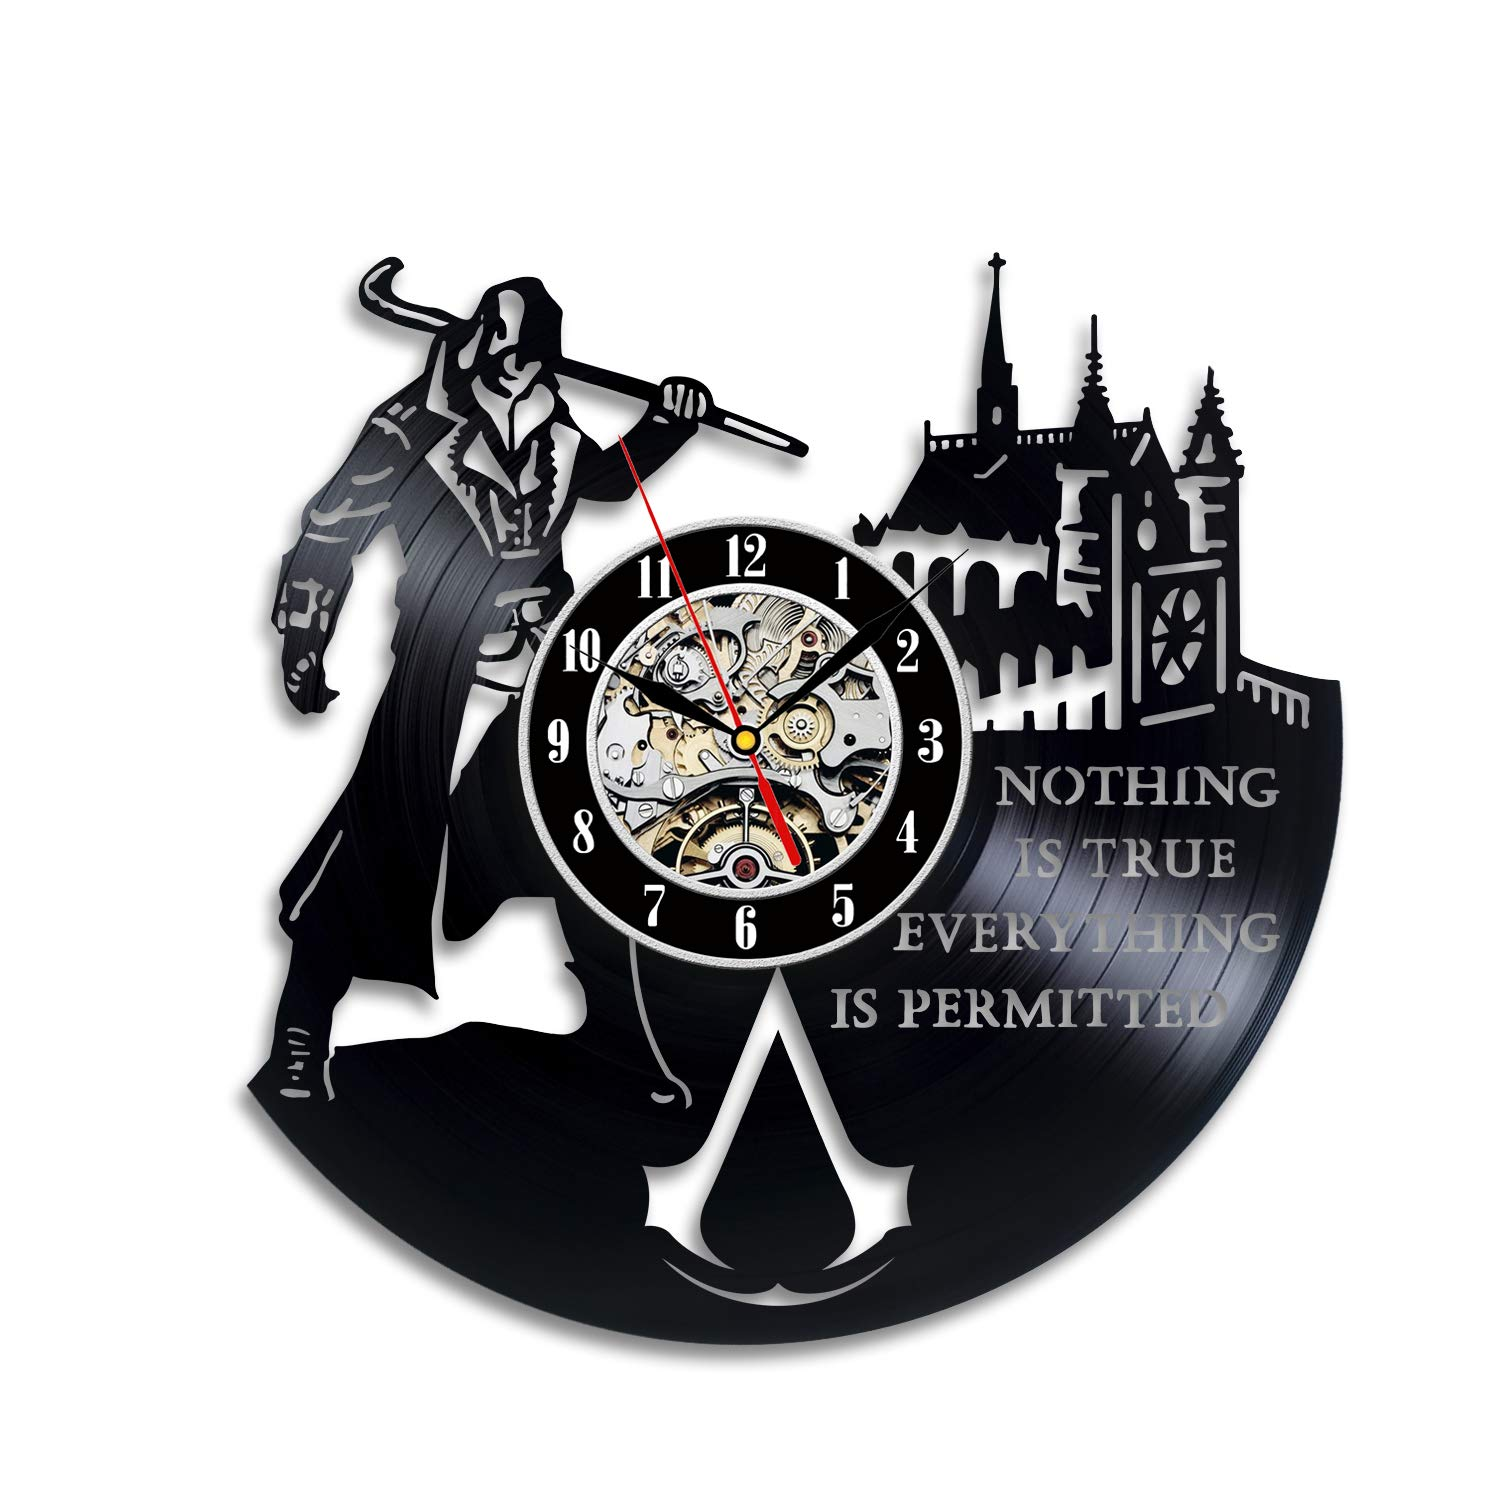 Video Game Assassin Fan Room Decoration Assassin Creed 30cm Vinyl Record Clock